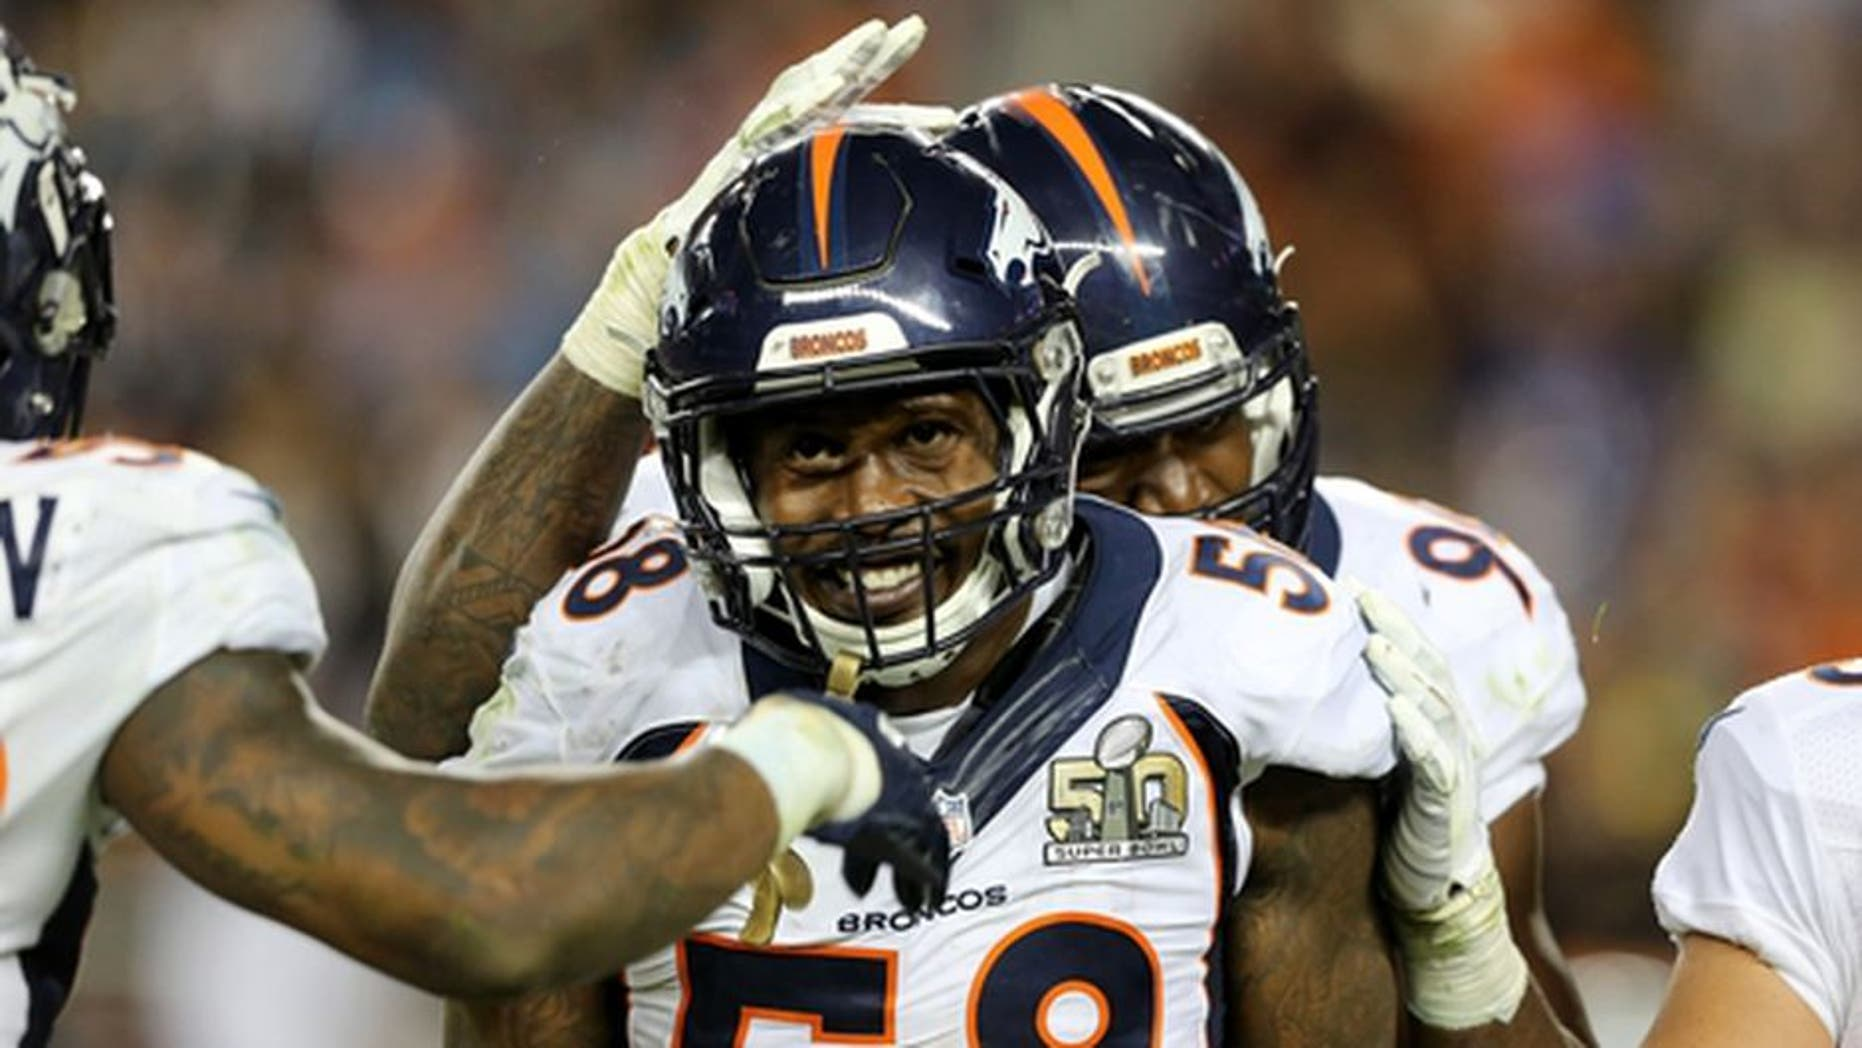 FILE - In this Feb. 7, 2016, file photo, Denver Broncos' Von Miller (58) celebrates with teammates in the fourth quarter of the NFL Super Bowl 50 football game in Santa Clara, Calif. Von Miller has his Super Bowl 50 helmet back. The FBI retrieved his helmet from Mexican authorities who also recovered Tom Brady's two Super Bowl jerseys in Mexico City last month. Special agents Brian Schmitt, Melissa Tallman and Clint Judd delivered the helmet to Miller at the UC Heath Center on Wednesday, April 19, 2017. (AP Photo/Gregory Payan, File)